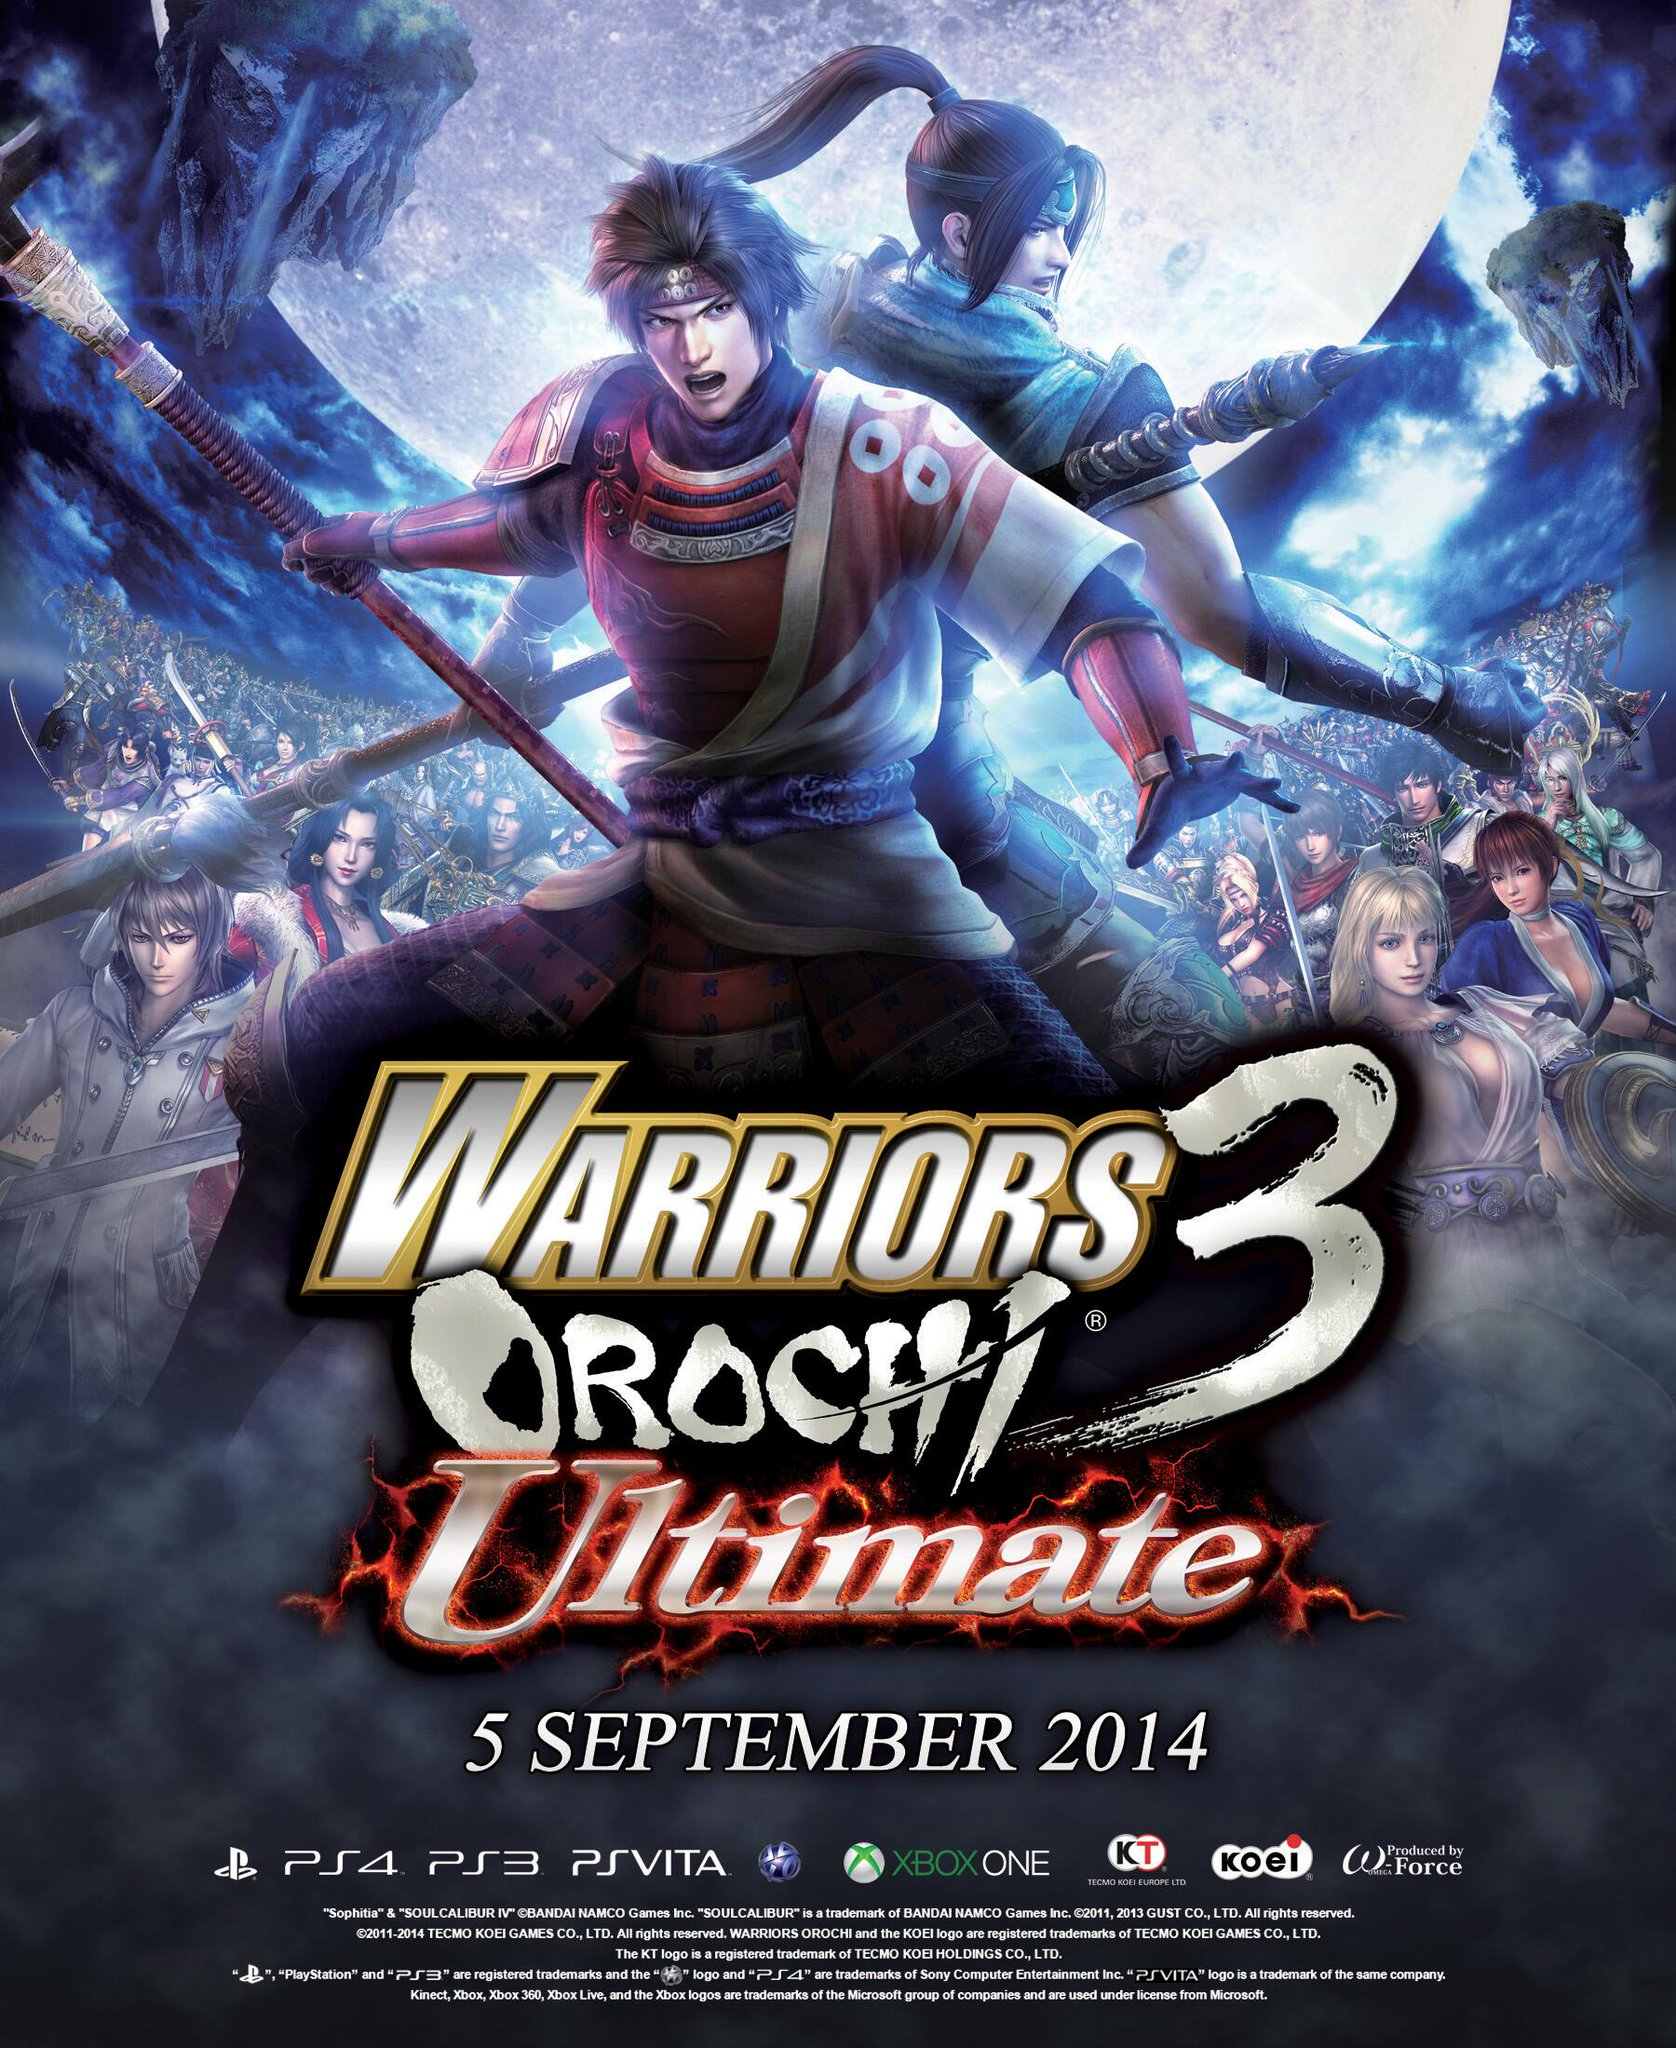 "Warriors Orochi 3 Ultimate Xbox One: KOEI TECMO EUROPE On Twitter: ""Warriors Orochi 3 Ultimate"